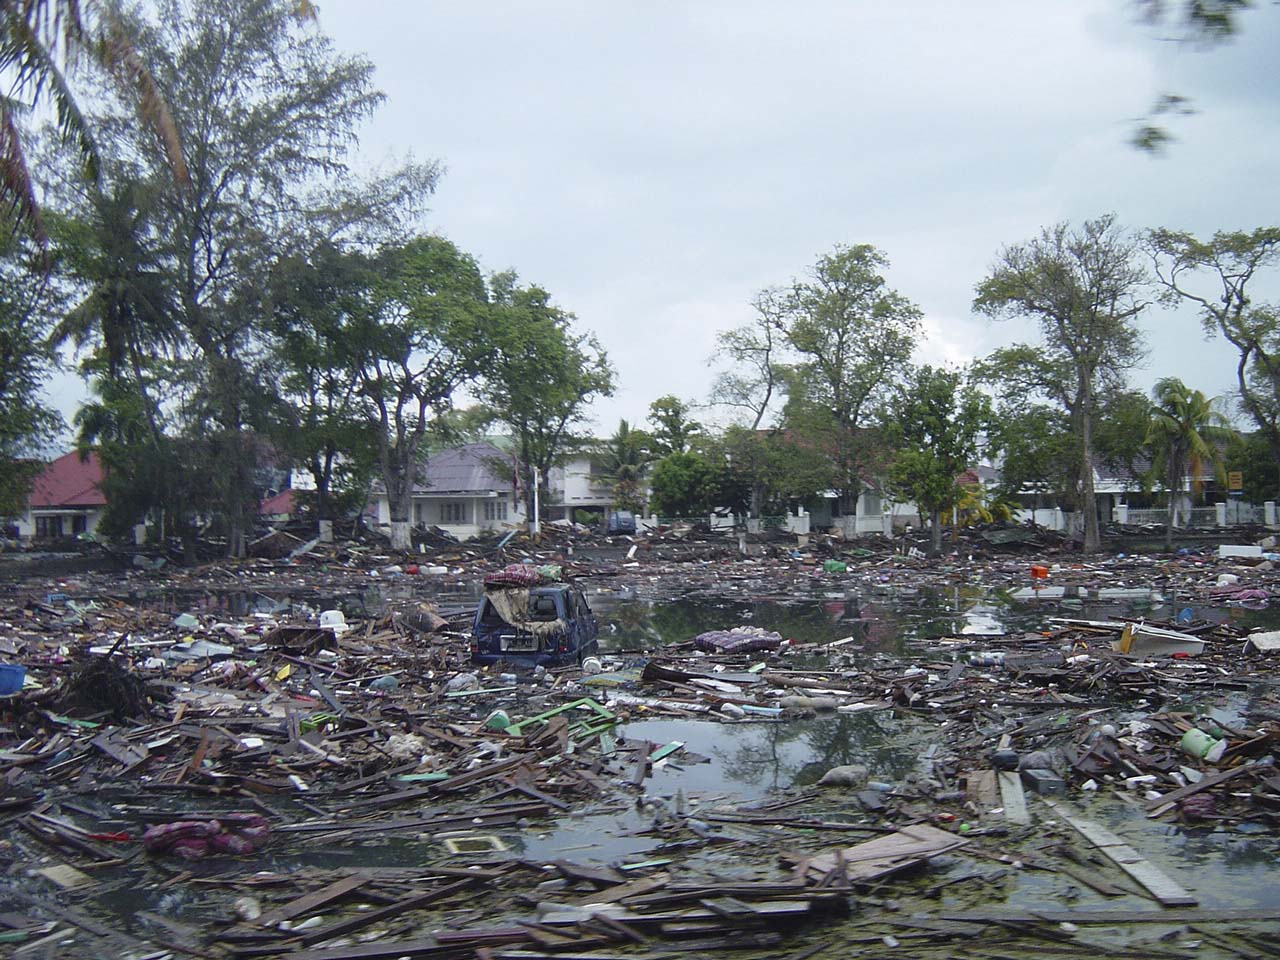 file us navy 050101 o xxxxb 017 trash and debris line the streets near local homes in downtown. Black Bedroom Furniture Sets. Home Design Ideas